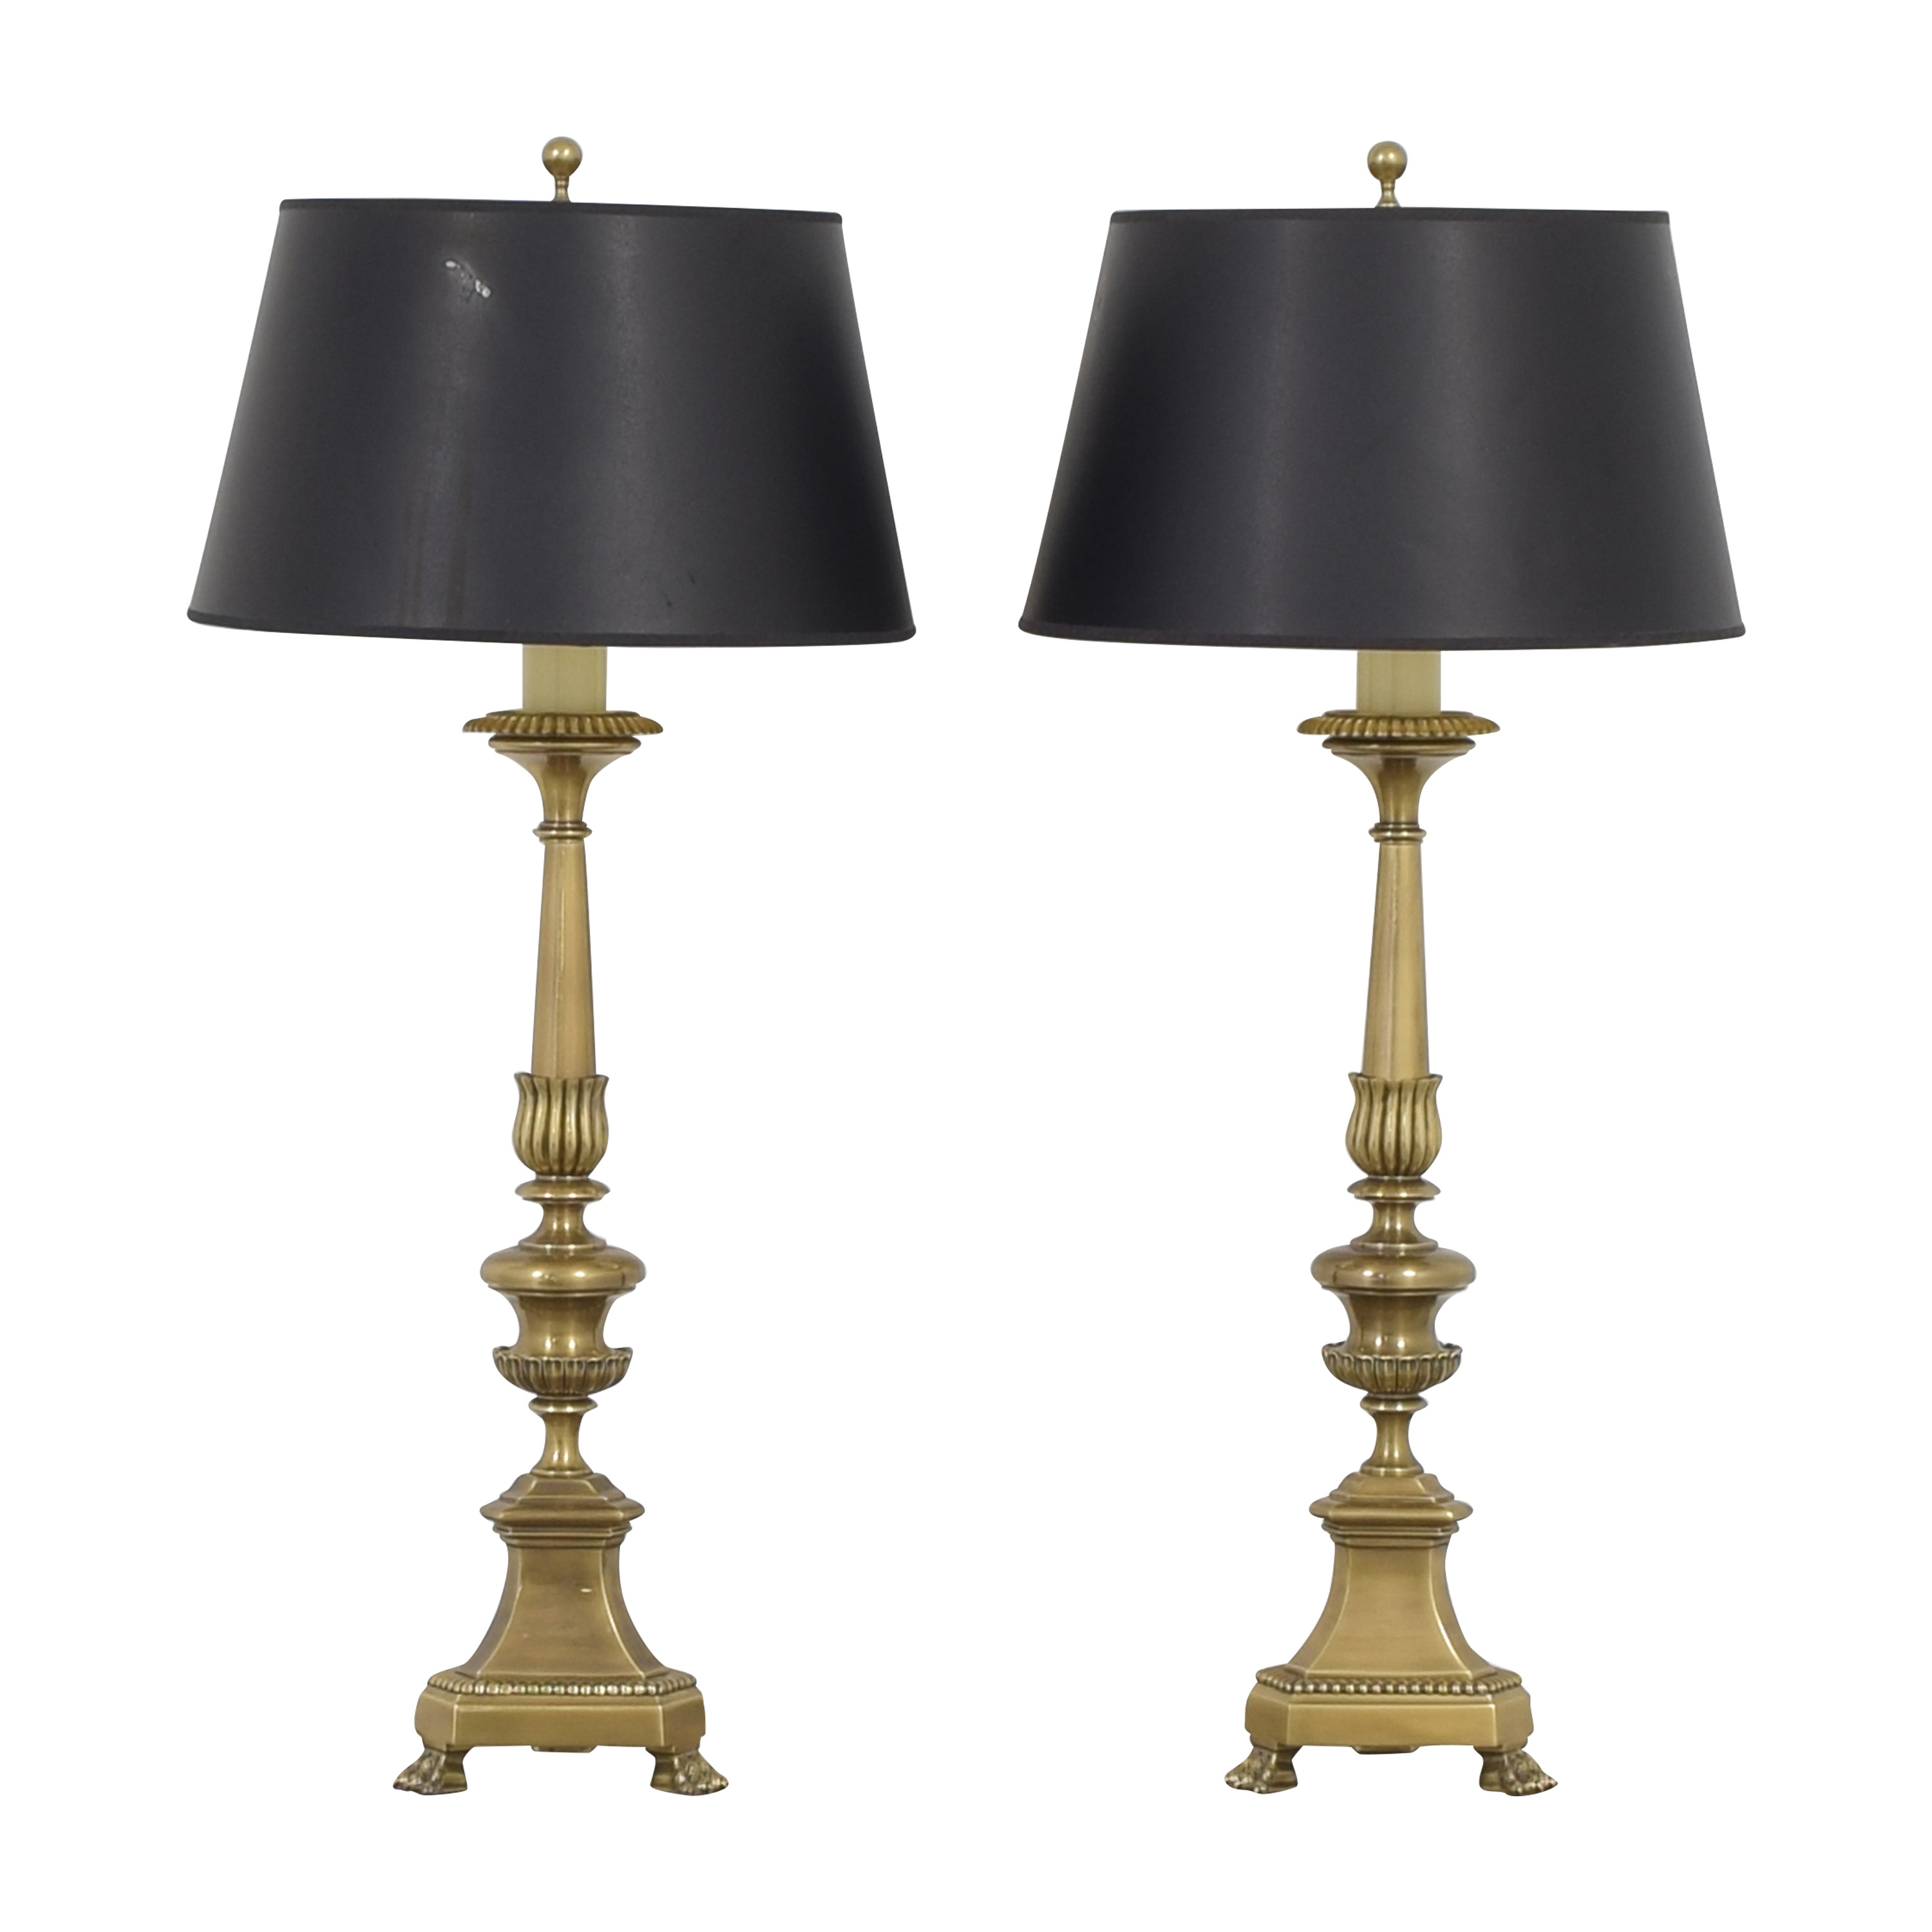 Ethan Allen Ethan Allen Candlestick Table Lamps nyc